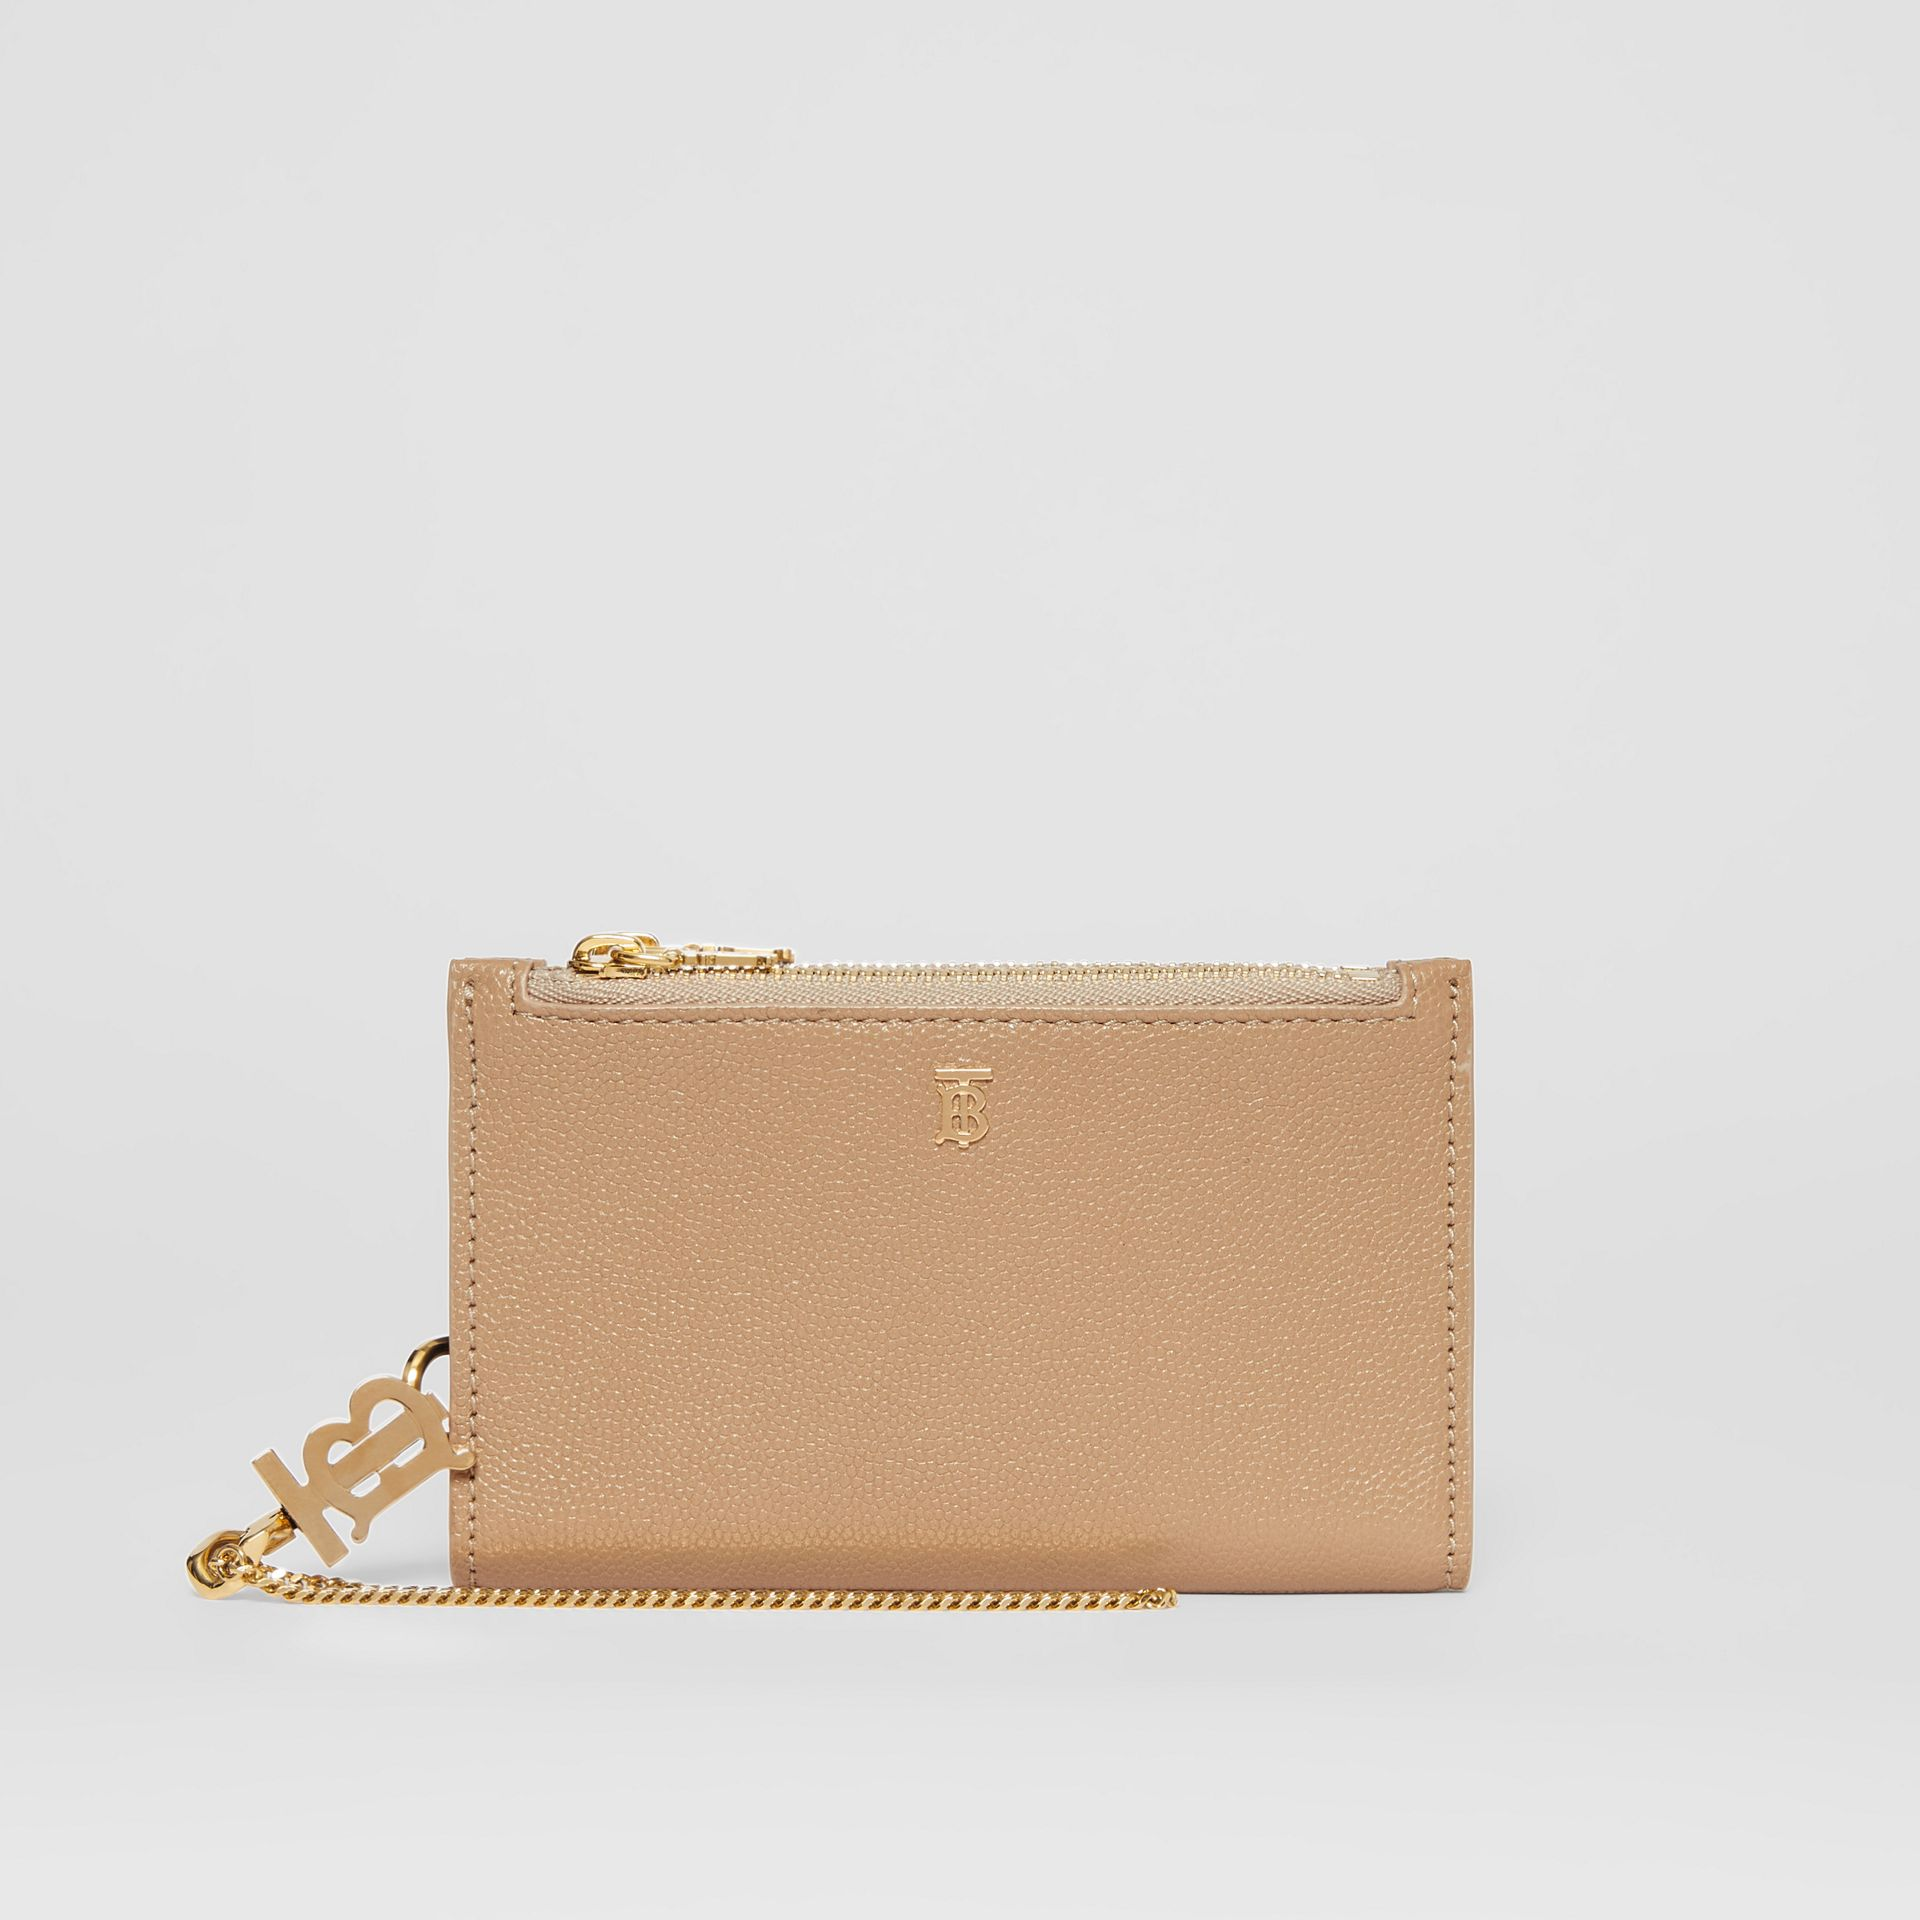 Monogram Motif Grainy Leather Wallet with Detachable Strap in Archive Beige - Women | Burberry Hong Kong S.A.R - gallery image 0